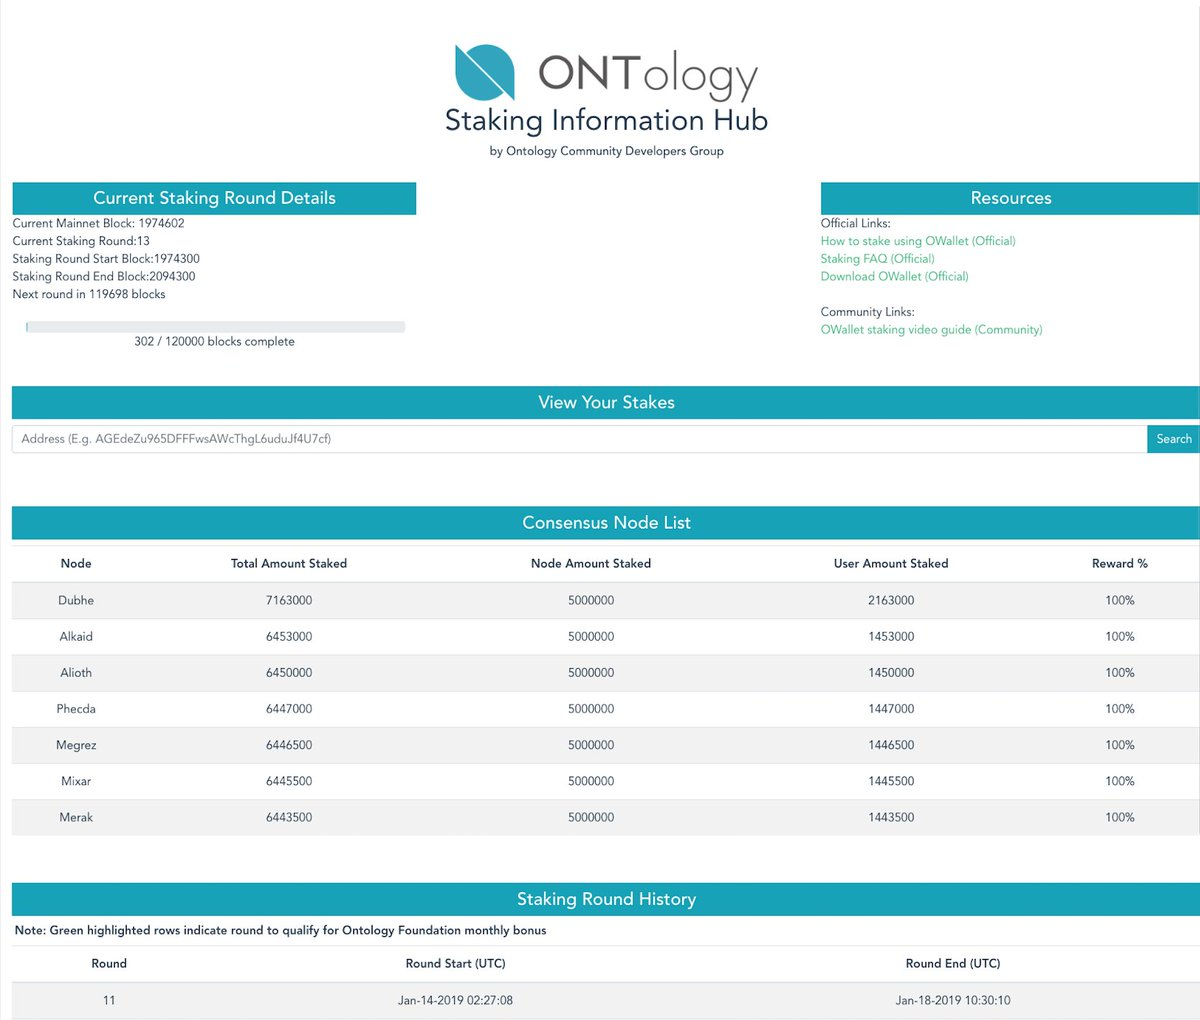 Ontology staking